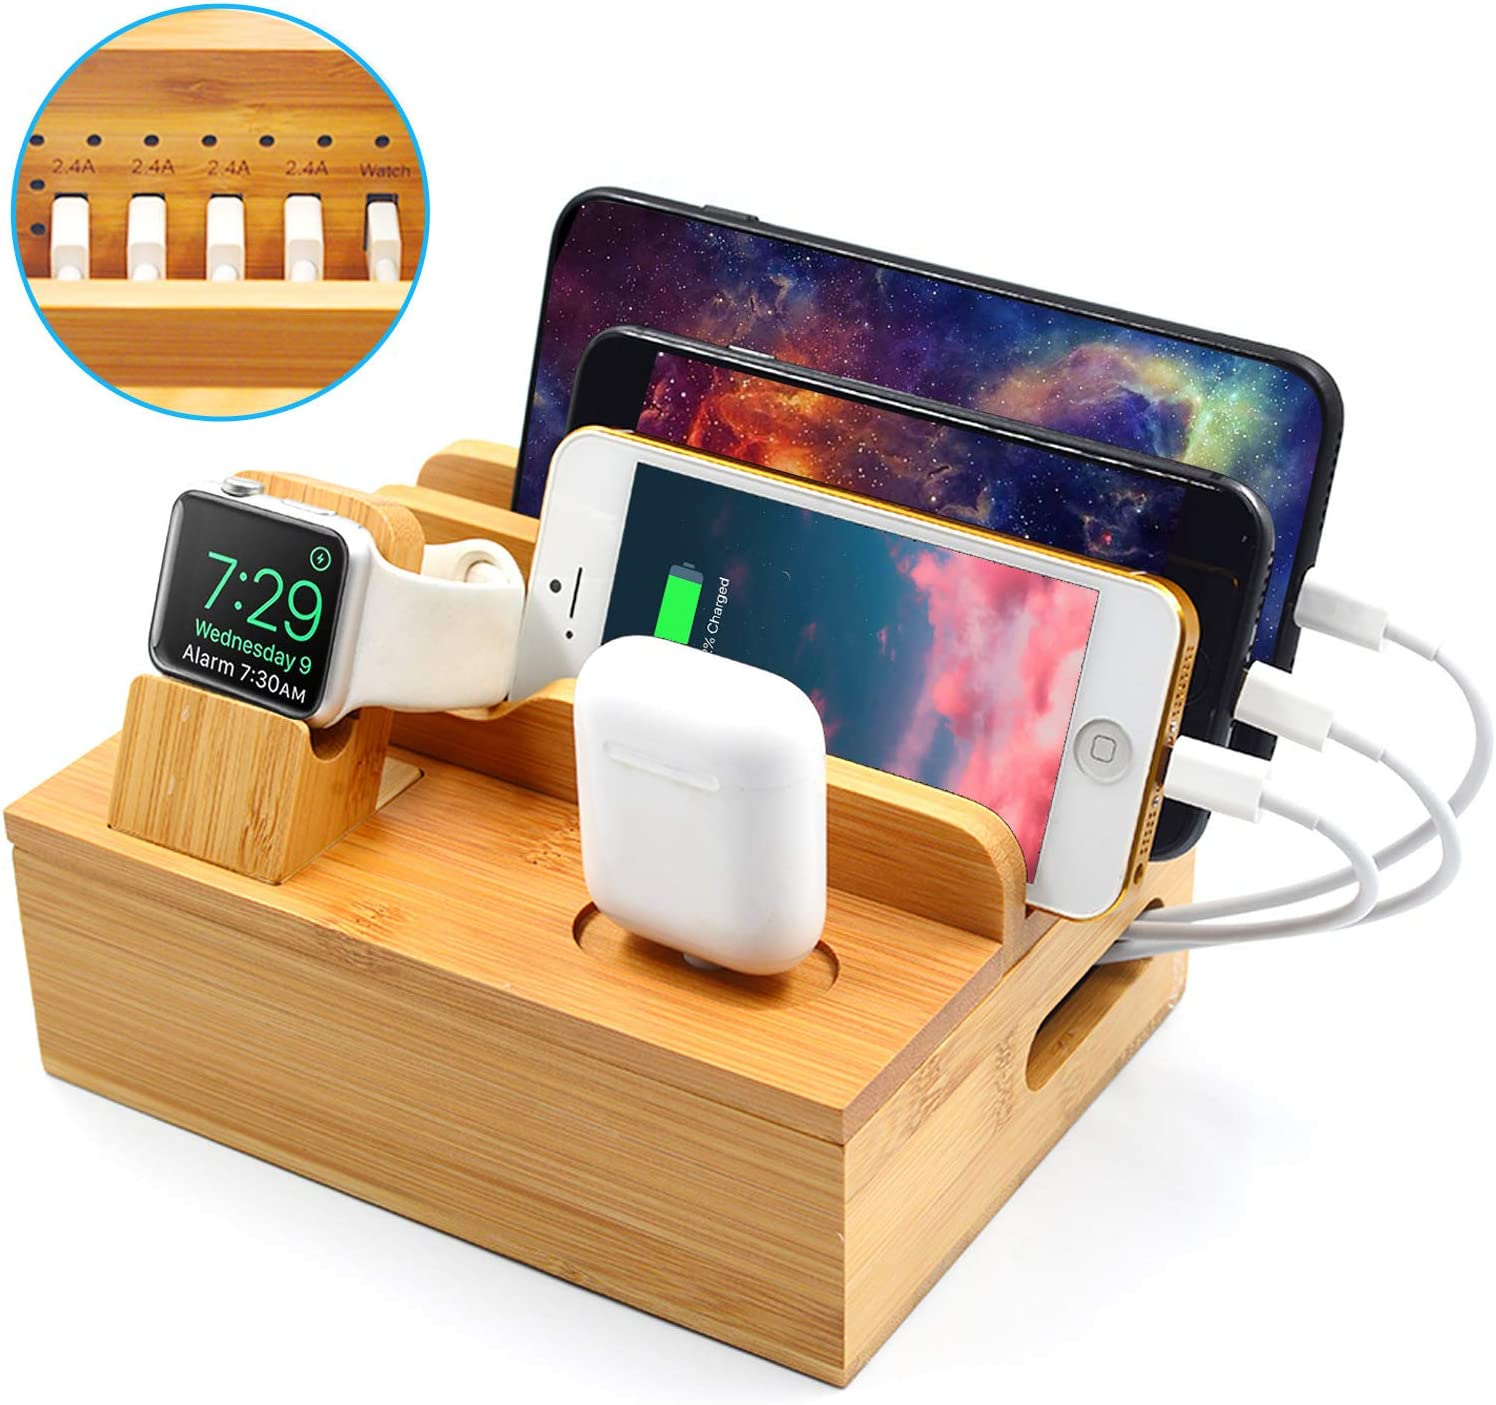 SETROVIC Bamboo Charging Dock, Wood 6 Port Charger Stand Fast USB Charging Station for Multiple Devices, Compatible Apple Watch Airpods Smartphone